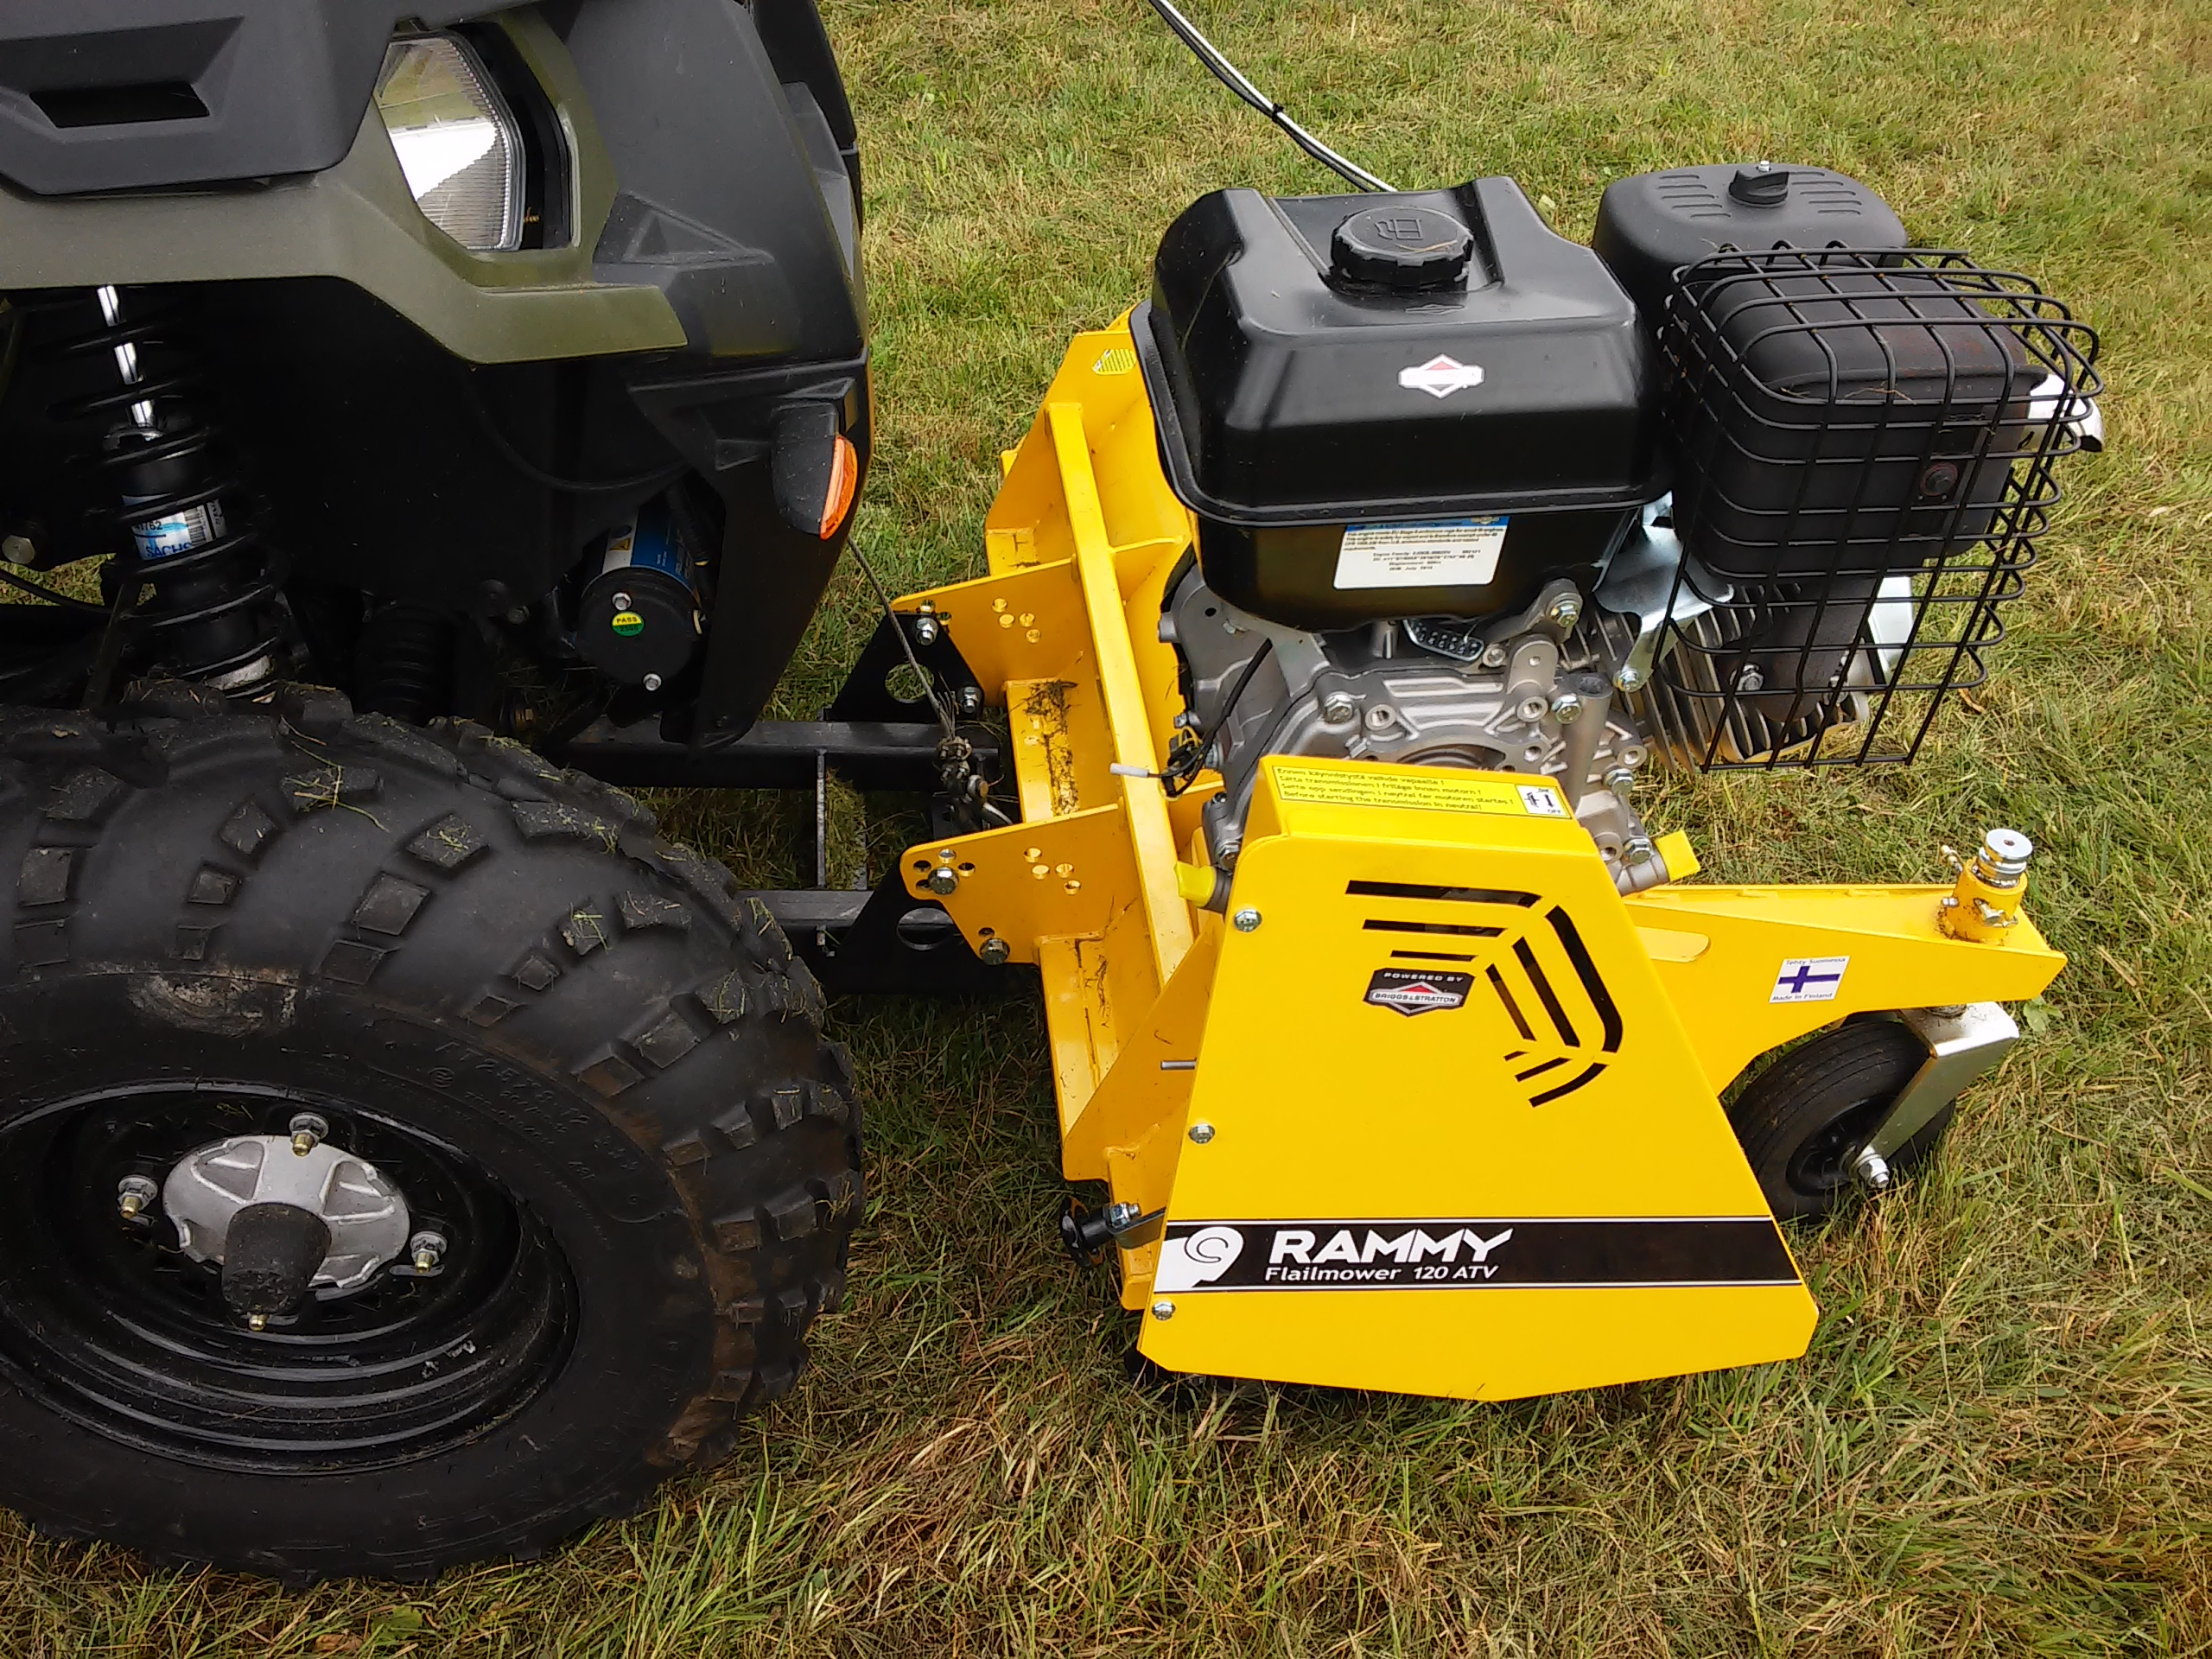 rammy-flailmower-120-atv-2015_4